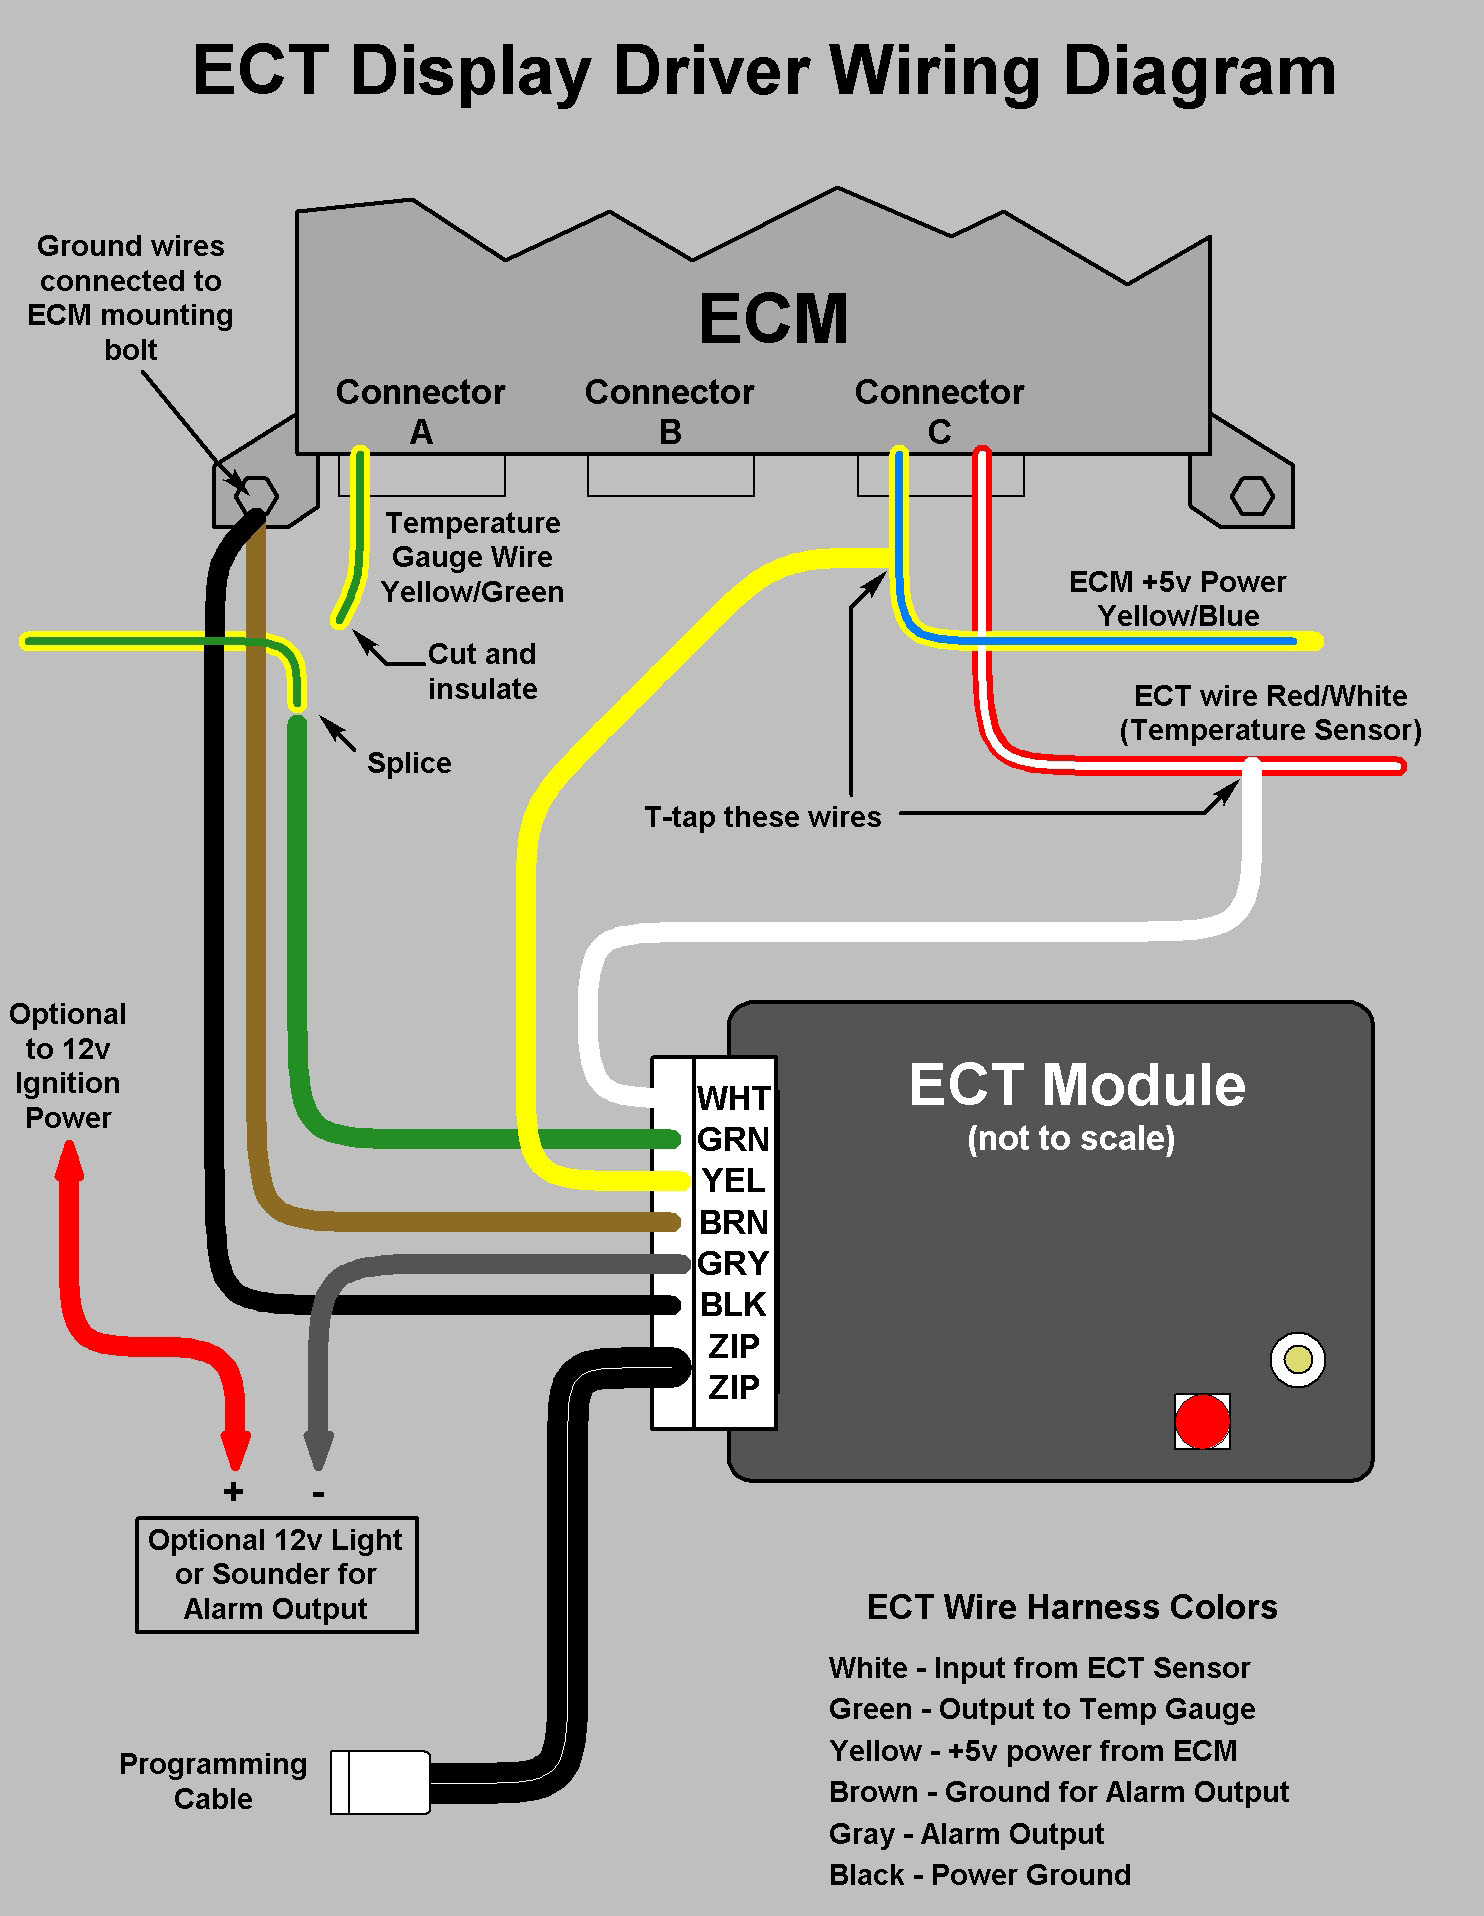 1994 honda accord alarm wiring diagram wonderful 1994 honda accord alarm wiring diagram photos  [ 1484 x 1916 Pixel ]